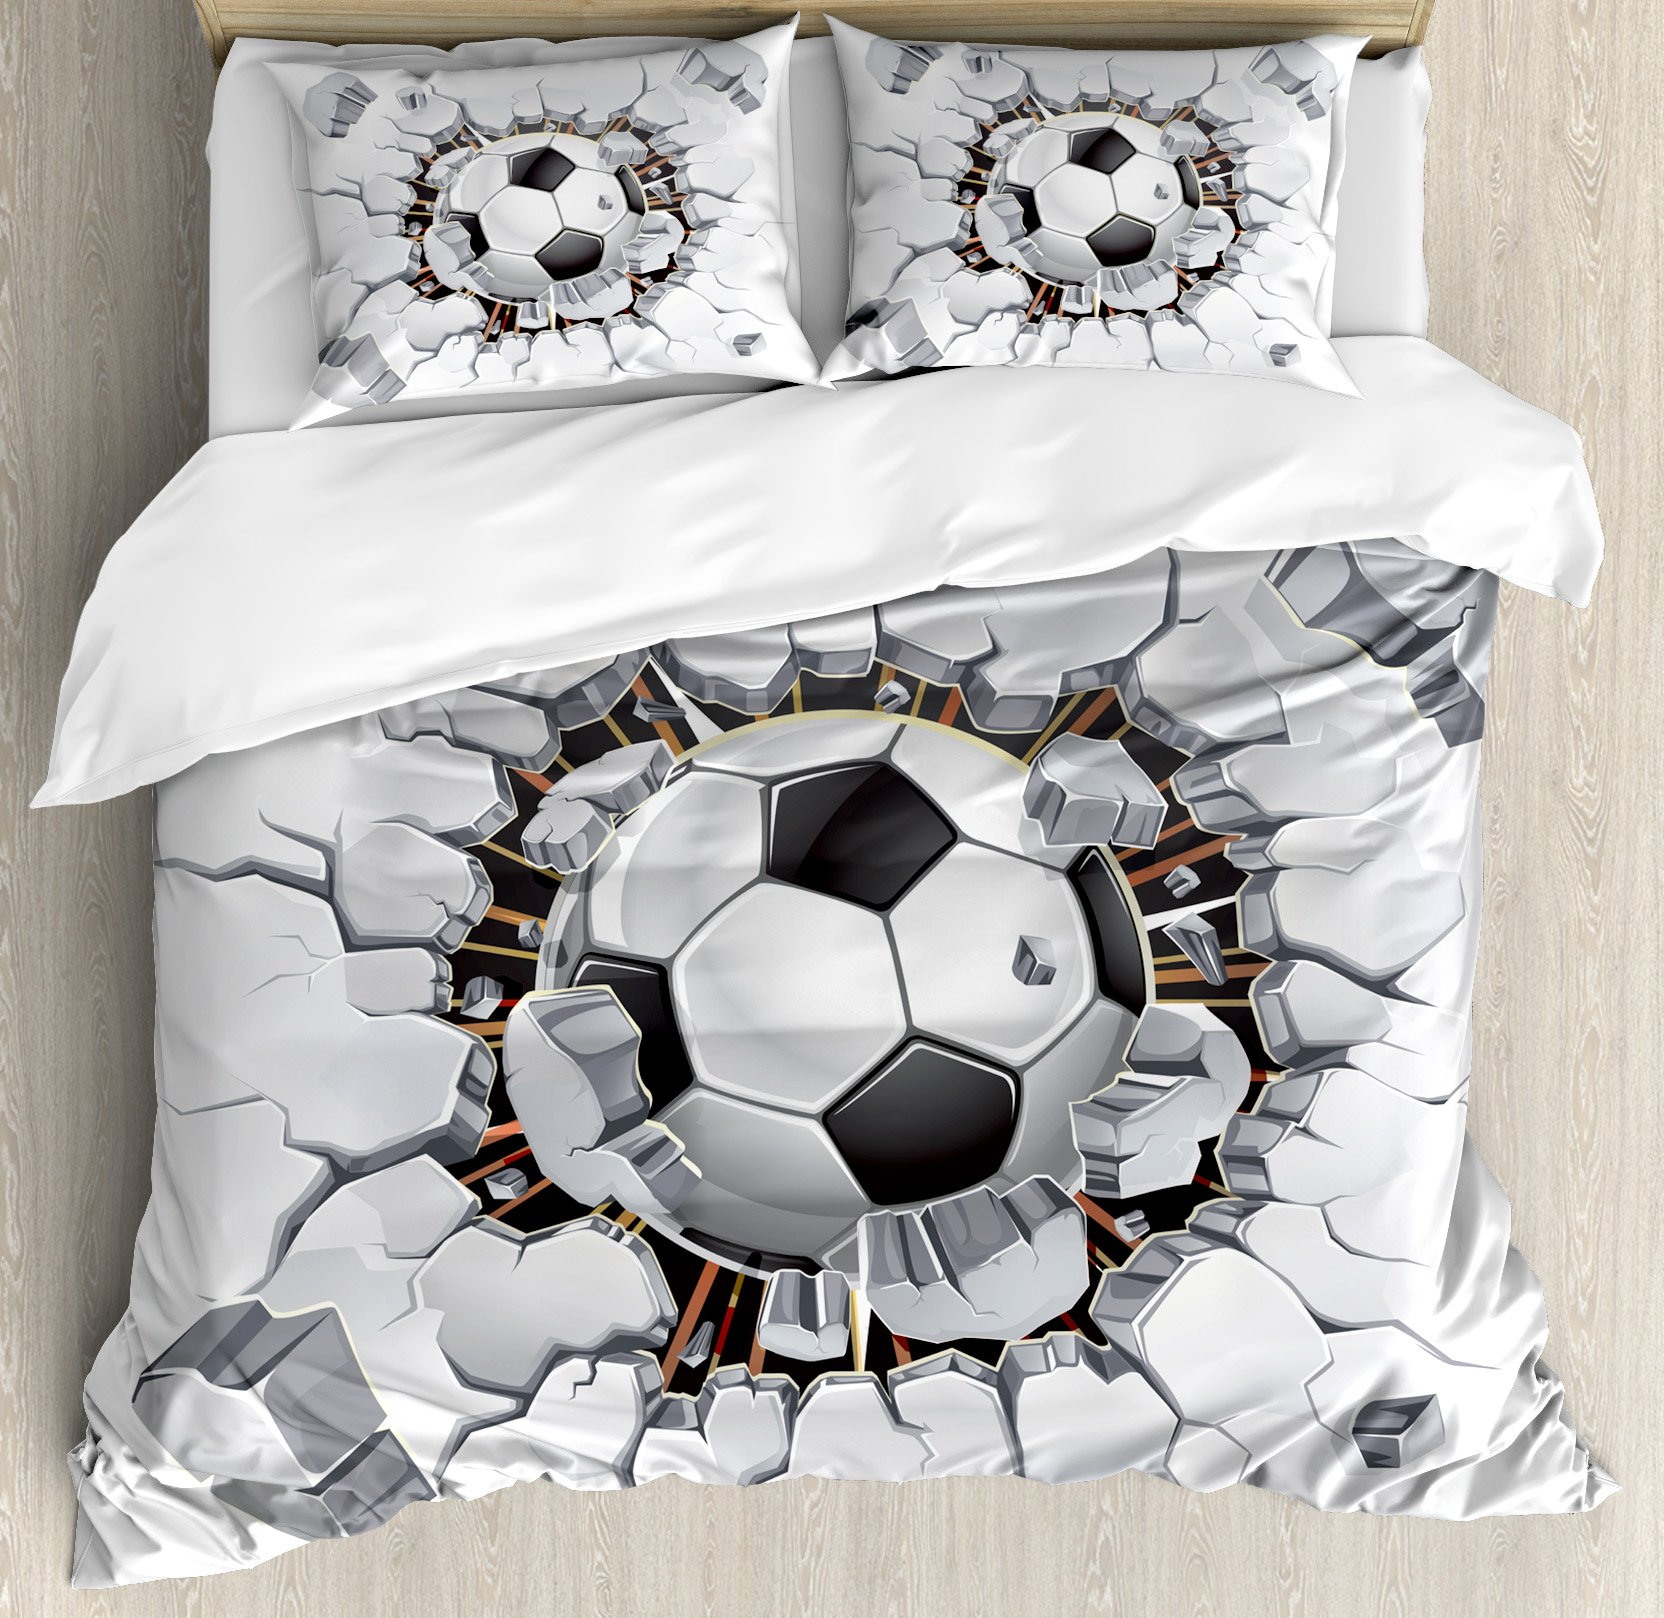 Sports Decor King Size Duvet Cover Set by Ambesonne, Soccer Ball and Old Plaster Wall Damage Destruction Punching Illustration, Decorative 3 Piece Bedding Set with 2 Pillow Shams by Ambesonne